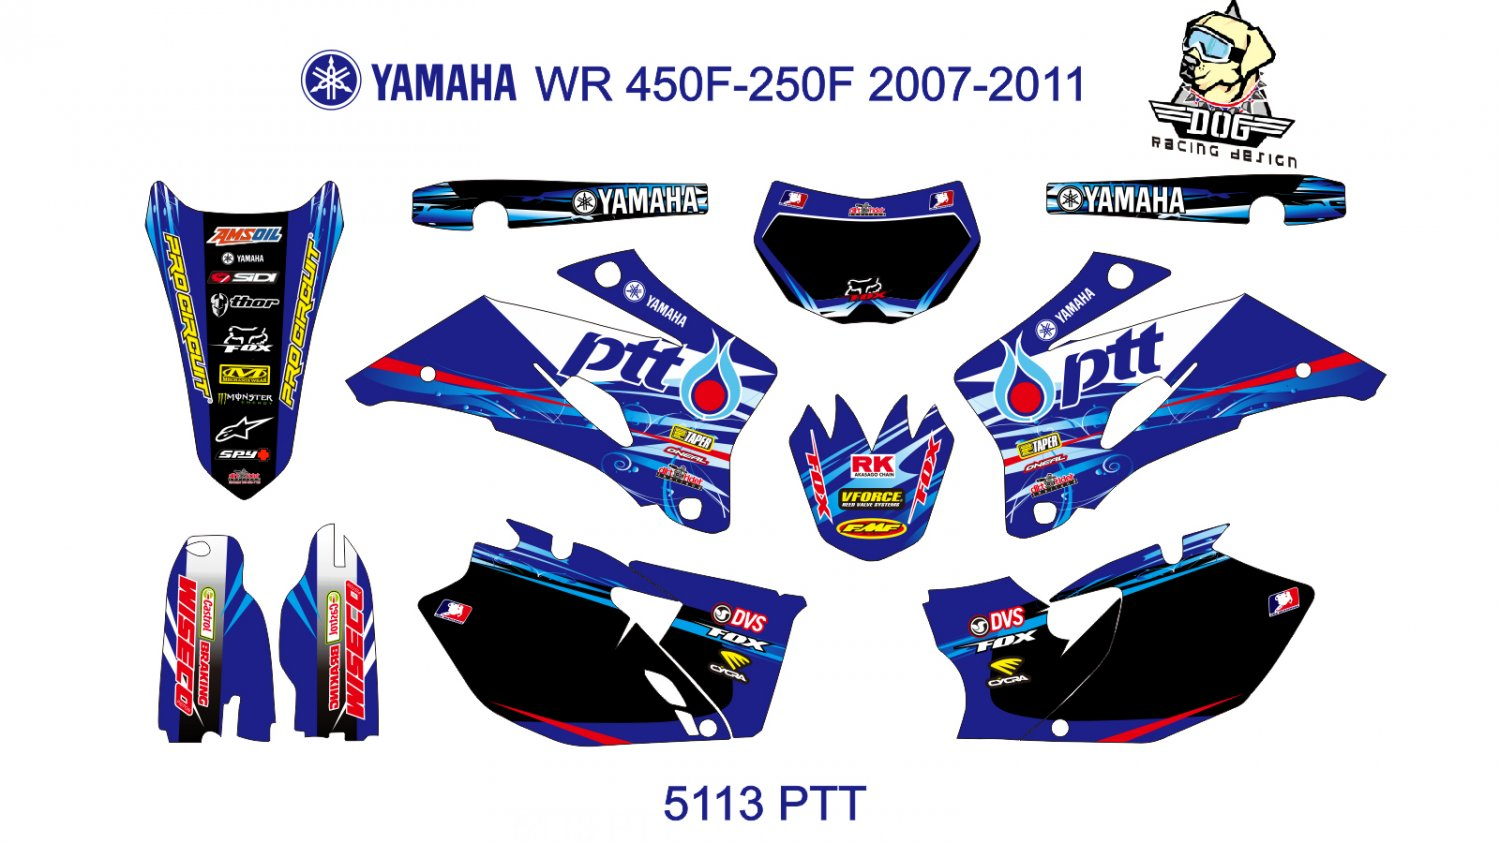 YAMAHA WR 450F-250F 2007-2011 GRAPHIC DECAL KIT CODE.5113